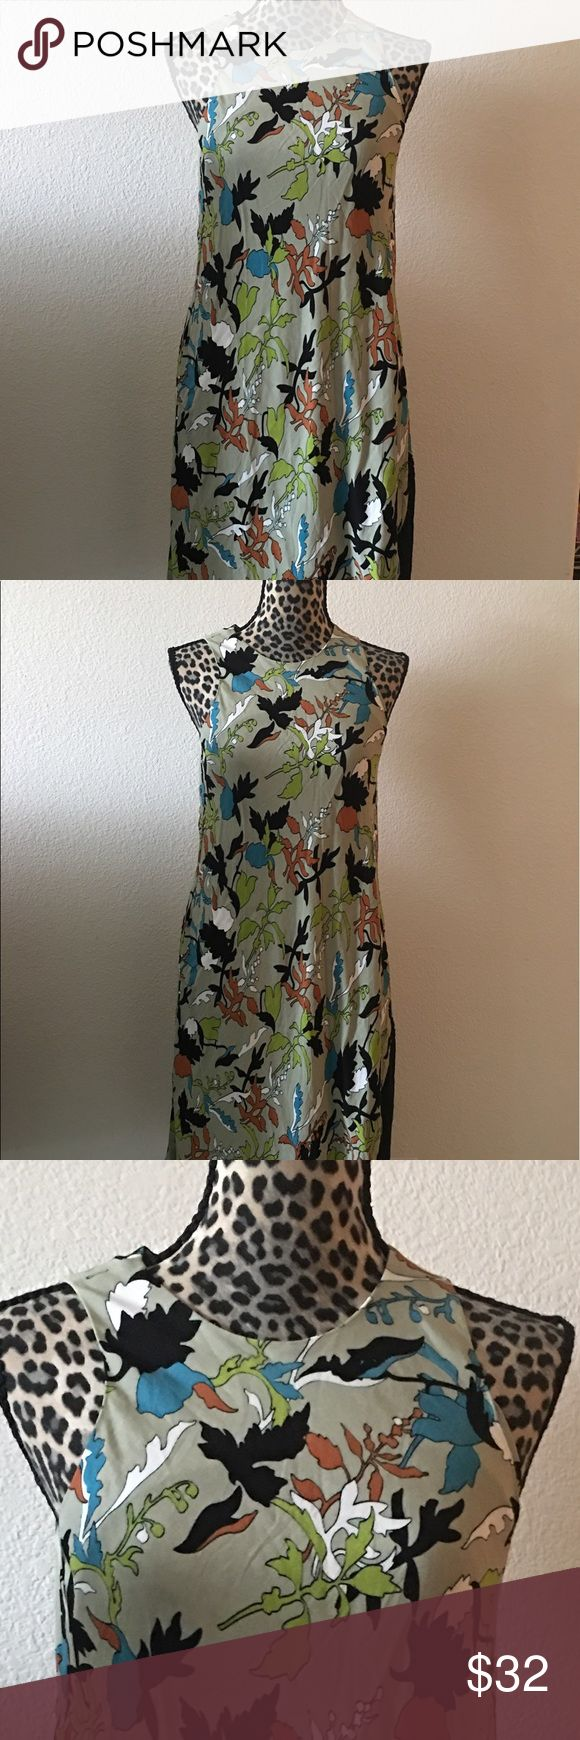 💐🌺Rachel Roy Dress💐🌺 💐🌺Great used condition Rachel Roy Dress in size Small 💐🌺 Beautiful prints and colors💐🌺 This dress has side pockets💐🌺 Rachel Roy Dresses Asymmetrical